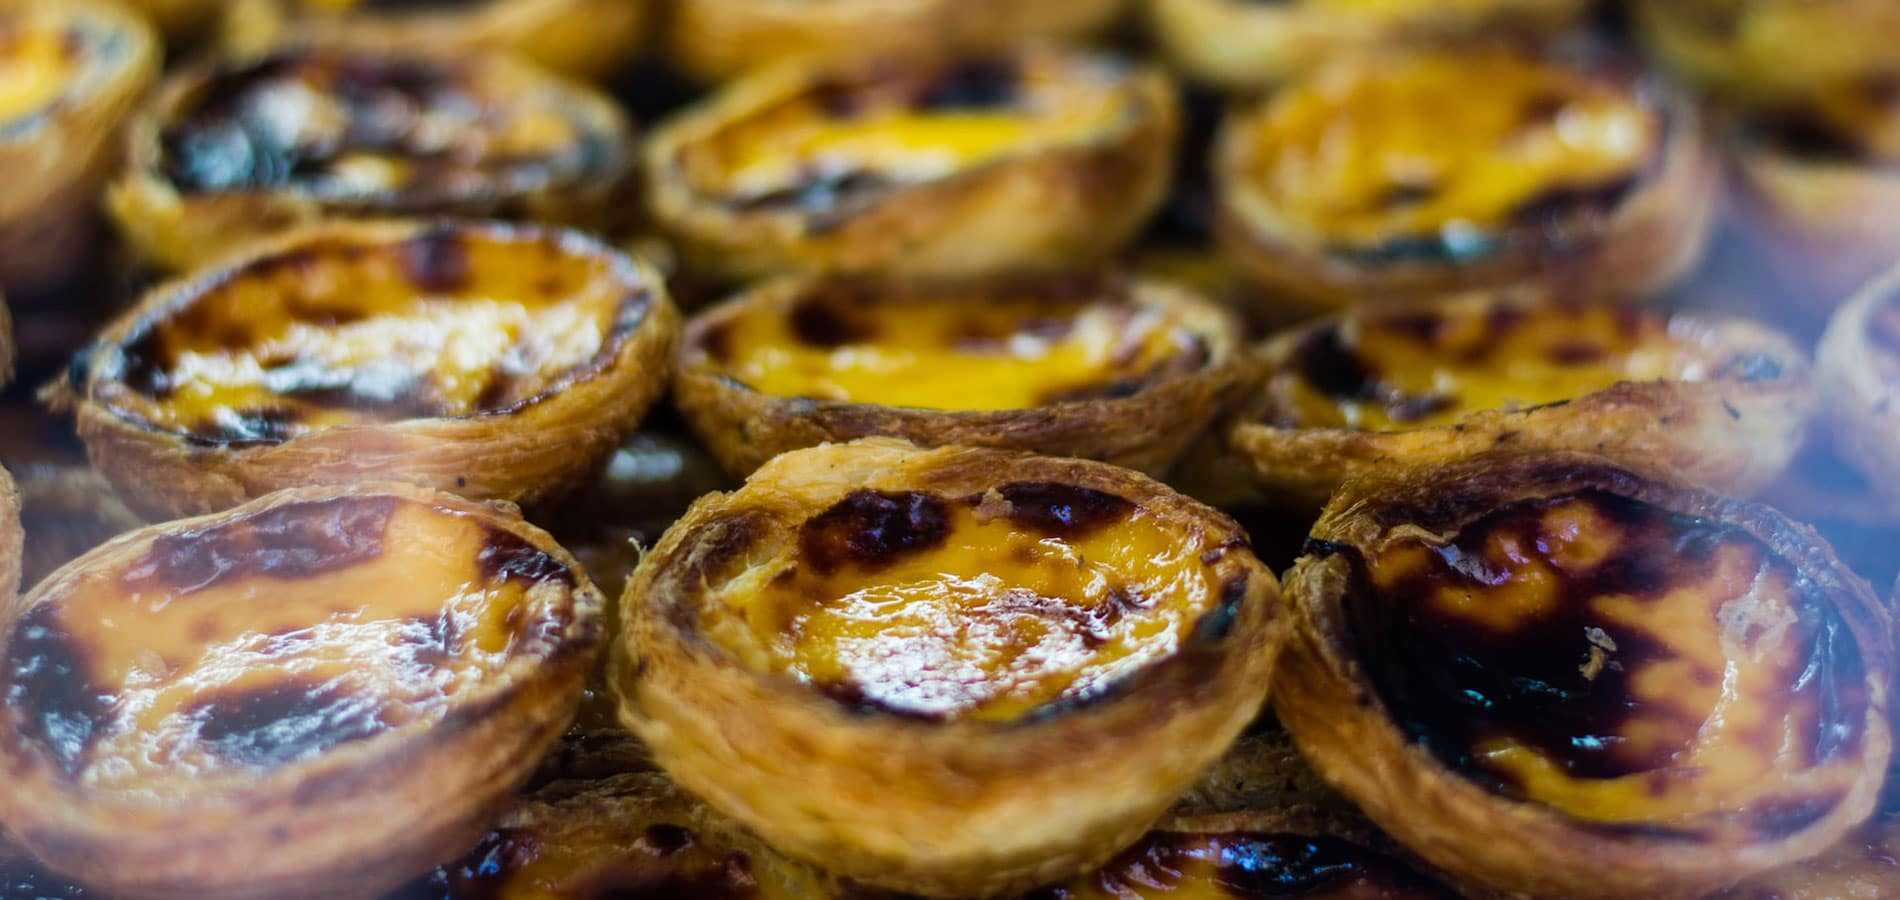 Portugal's Food Footprint: How Sustainable Are The Portuguese?